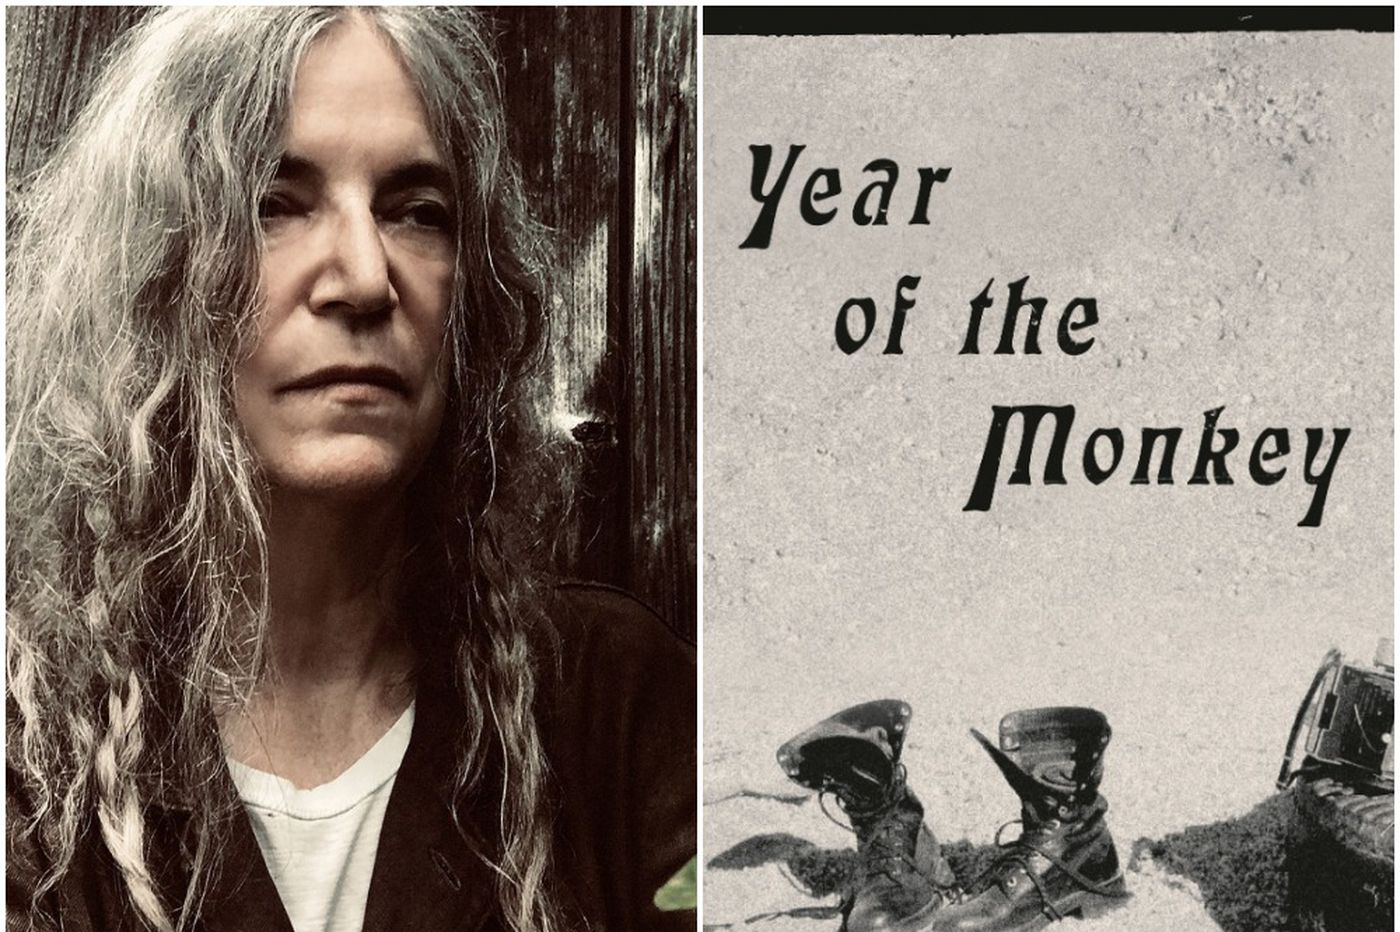 The fall book tour circuit brings Patti Smith, Debbie Harry, Bill Bryson, Booker T. Jones to Philadelphia. Jon Dorenbos gives an author talk, too.